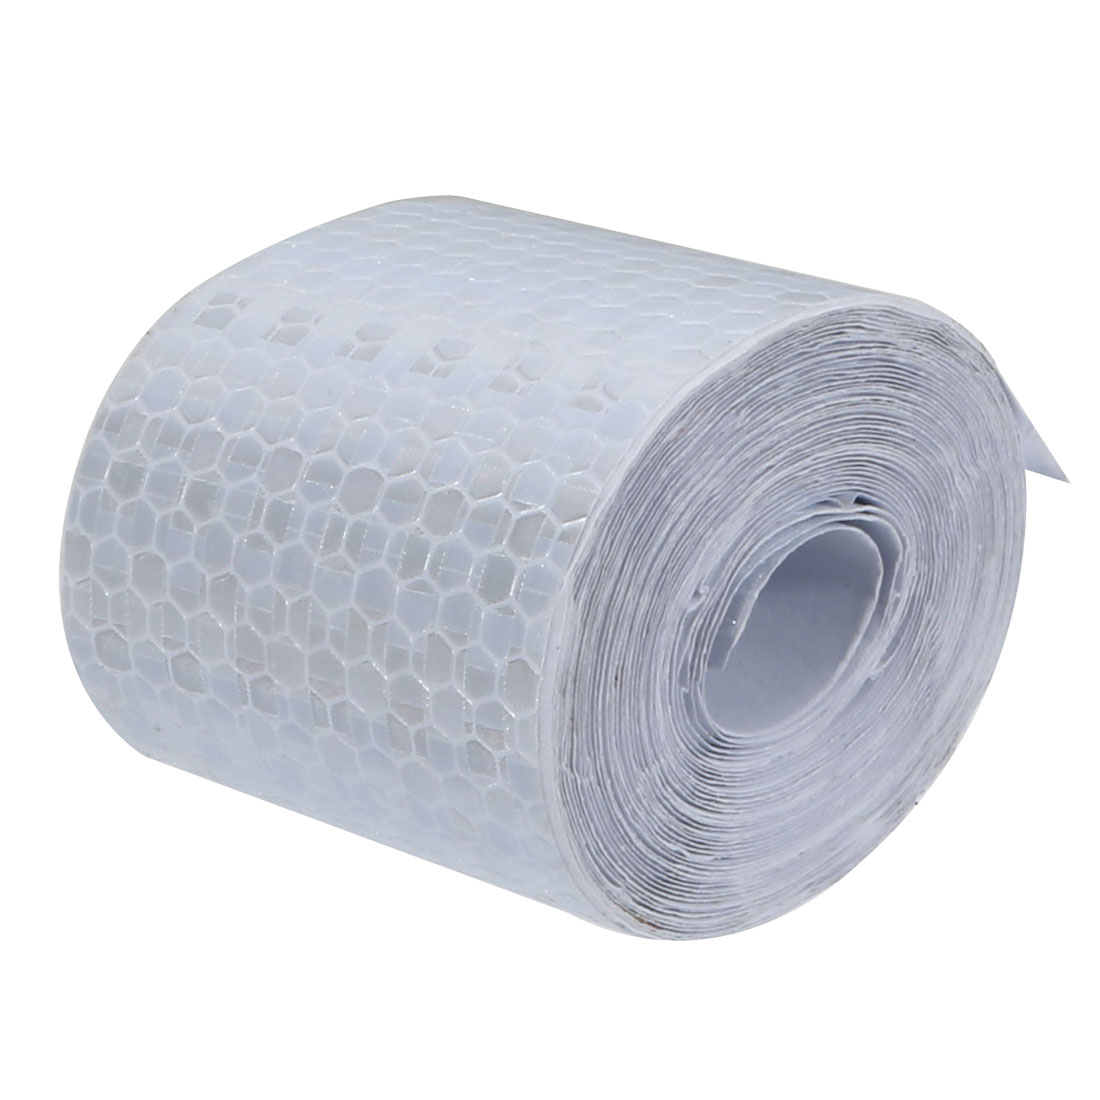 5cm Wide 5M Length Honeycomb Adhesive Reflective Warning Tape Silvery White